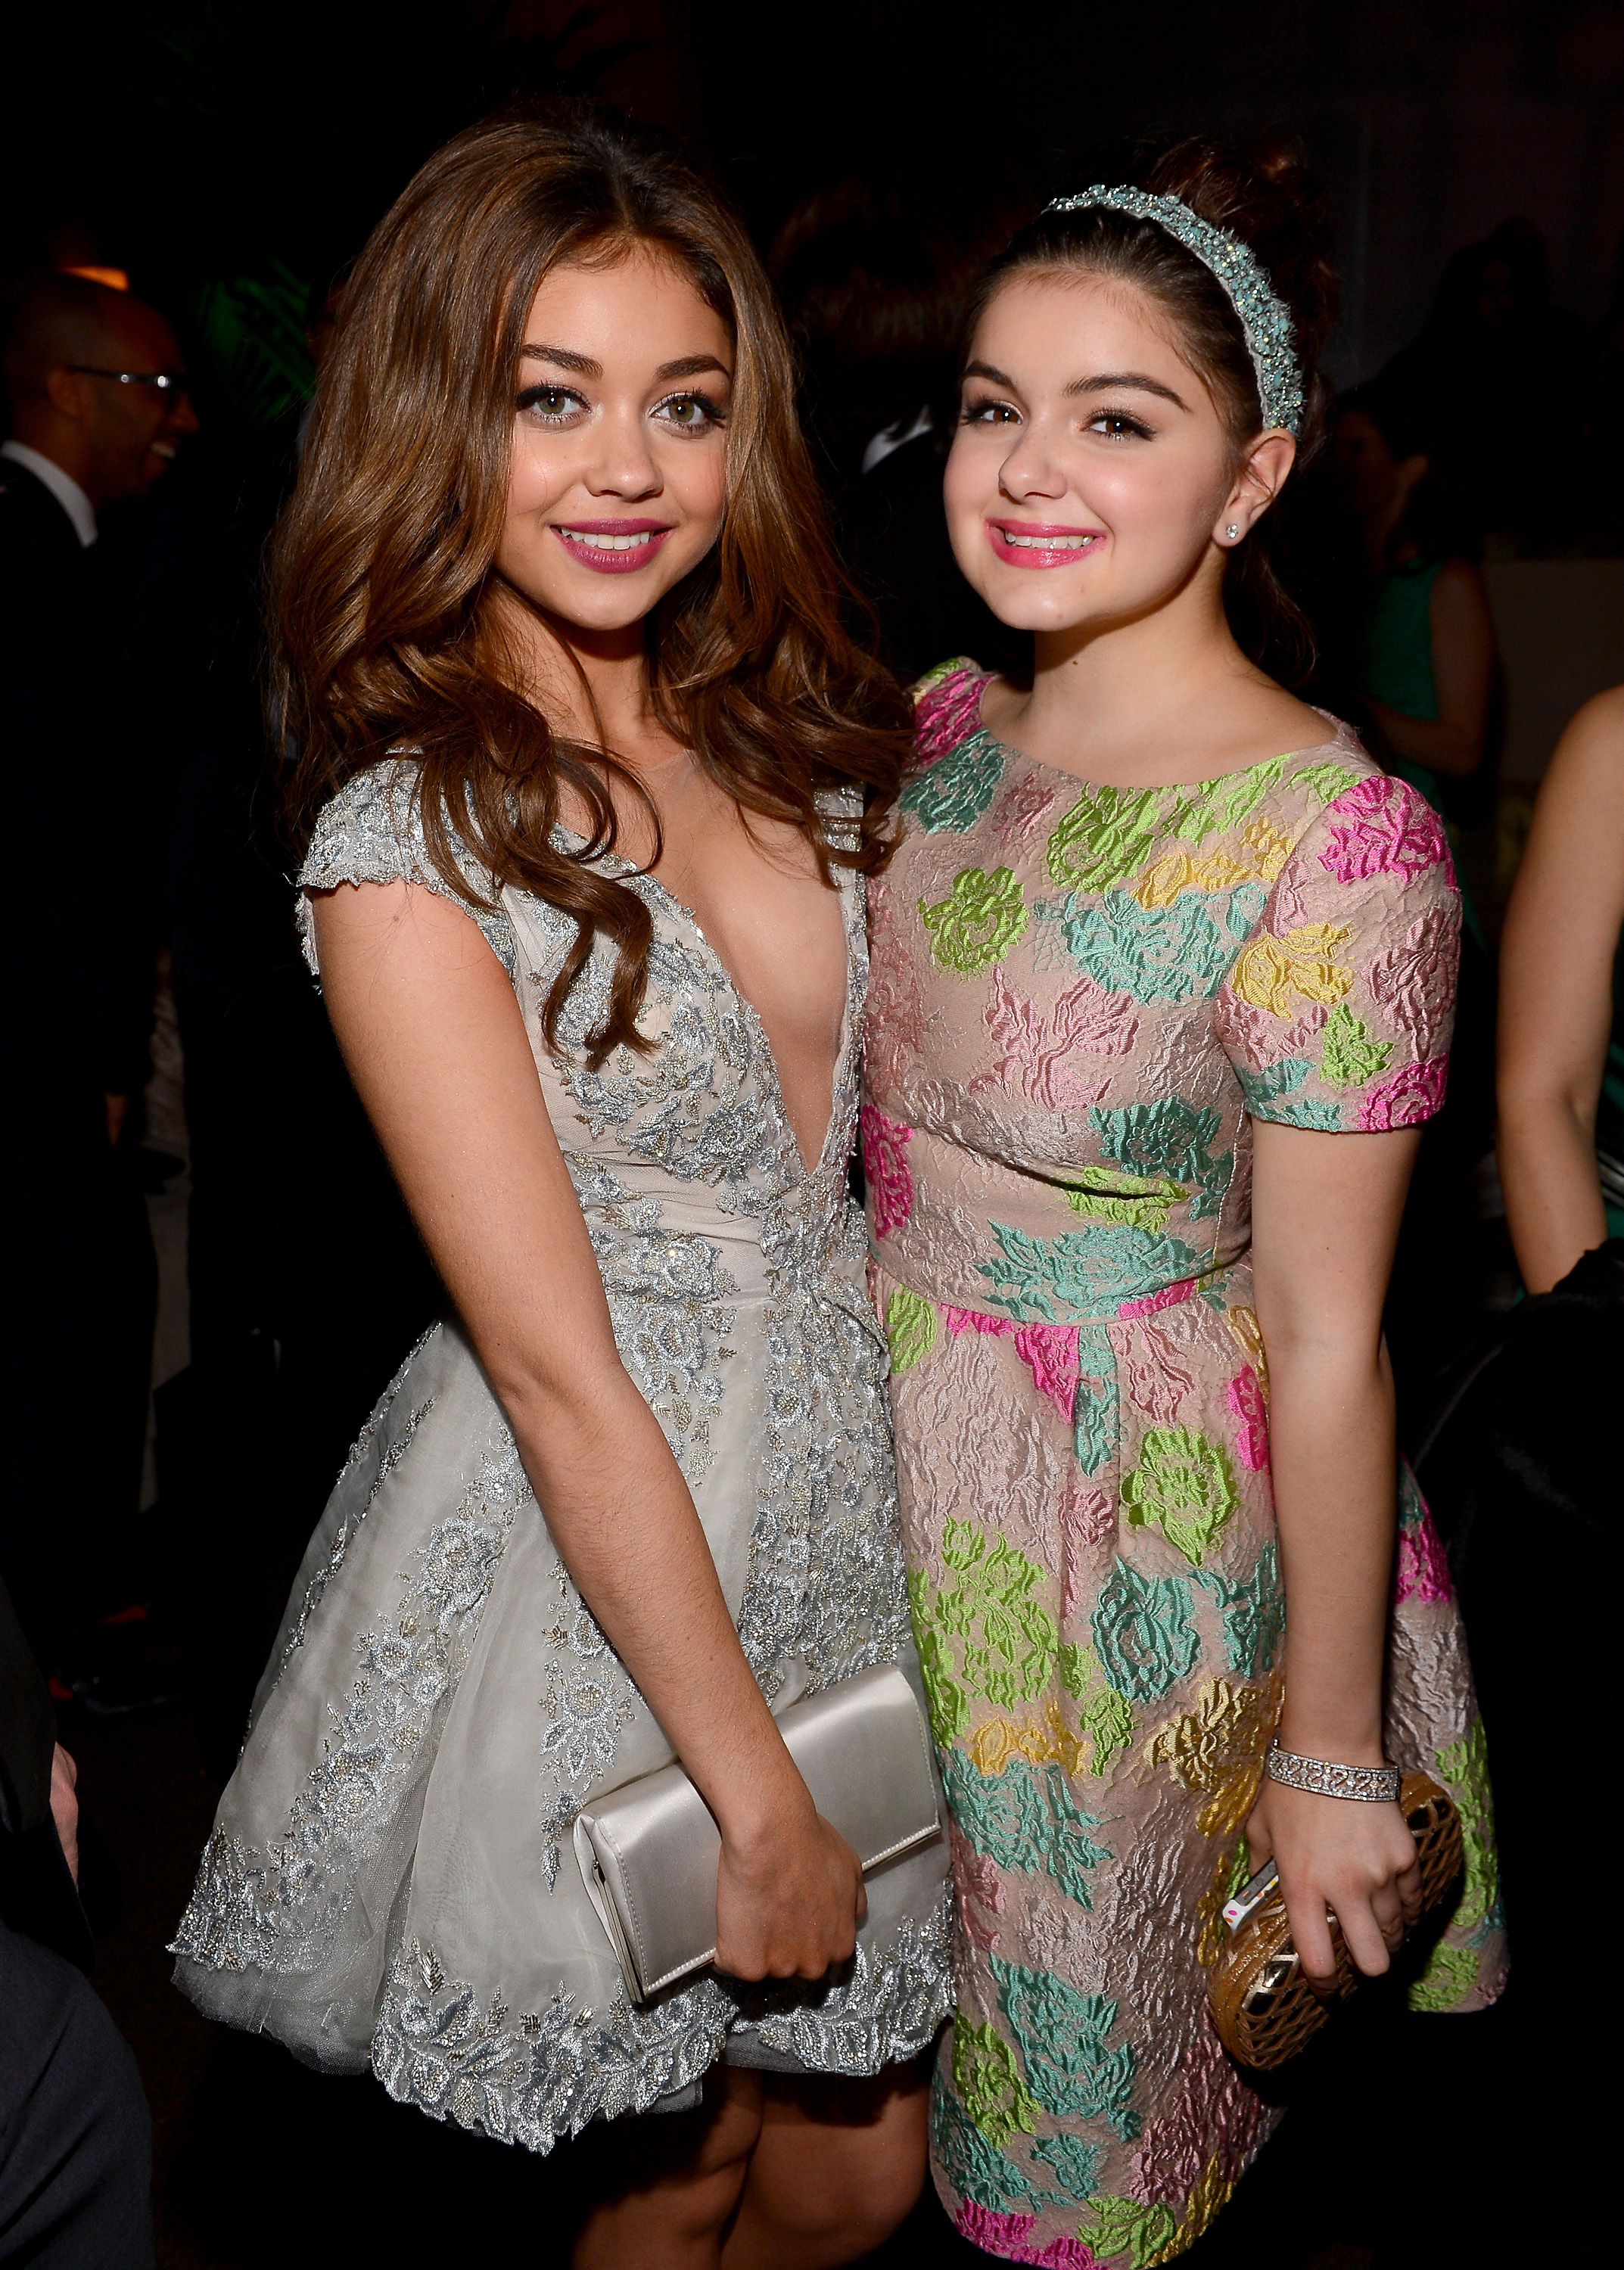 Modern Family's Ariel Winter and Sarah Hyland hung out inside Fox's Golden Globes party.